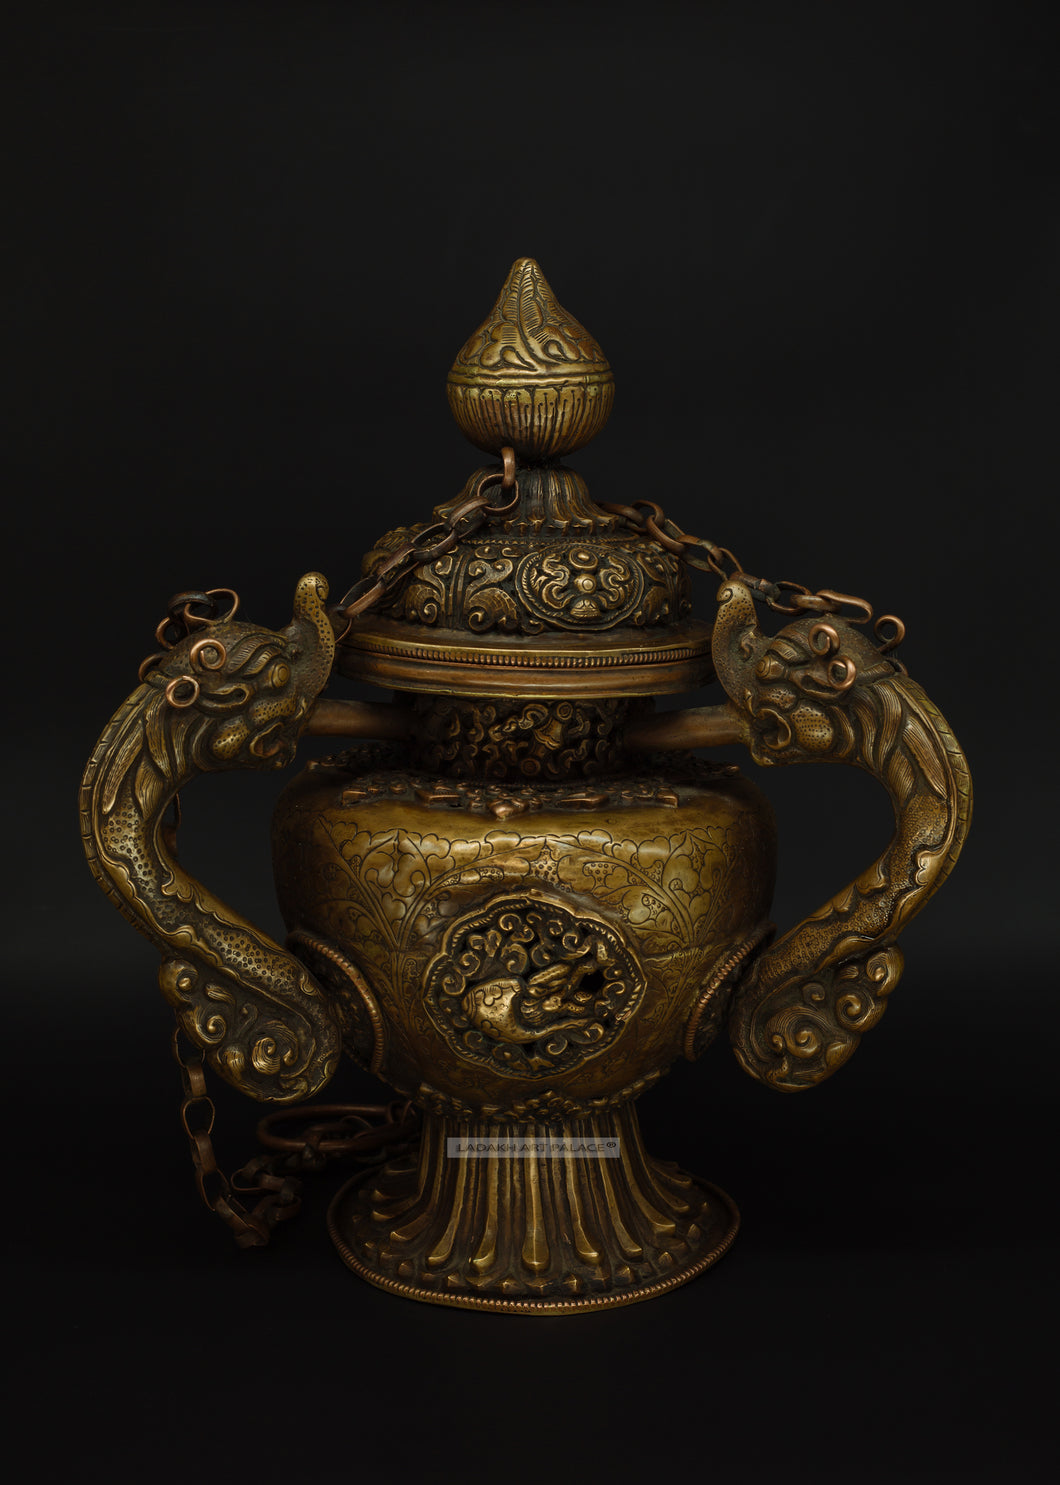 Brass Incense Dispenser - the ladakh art palace